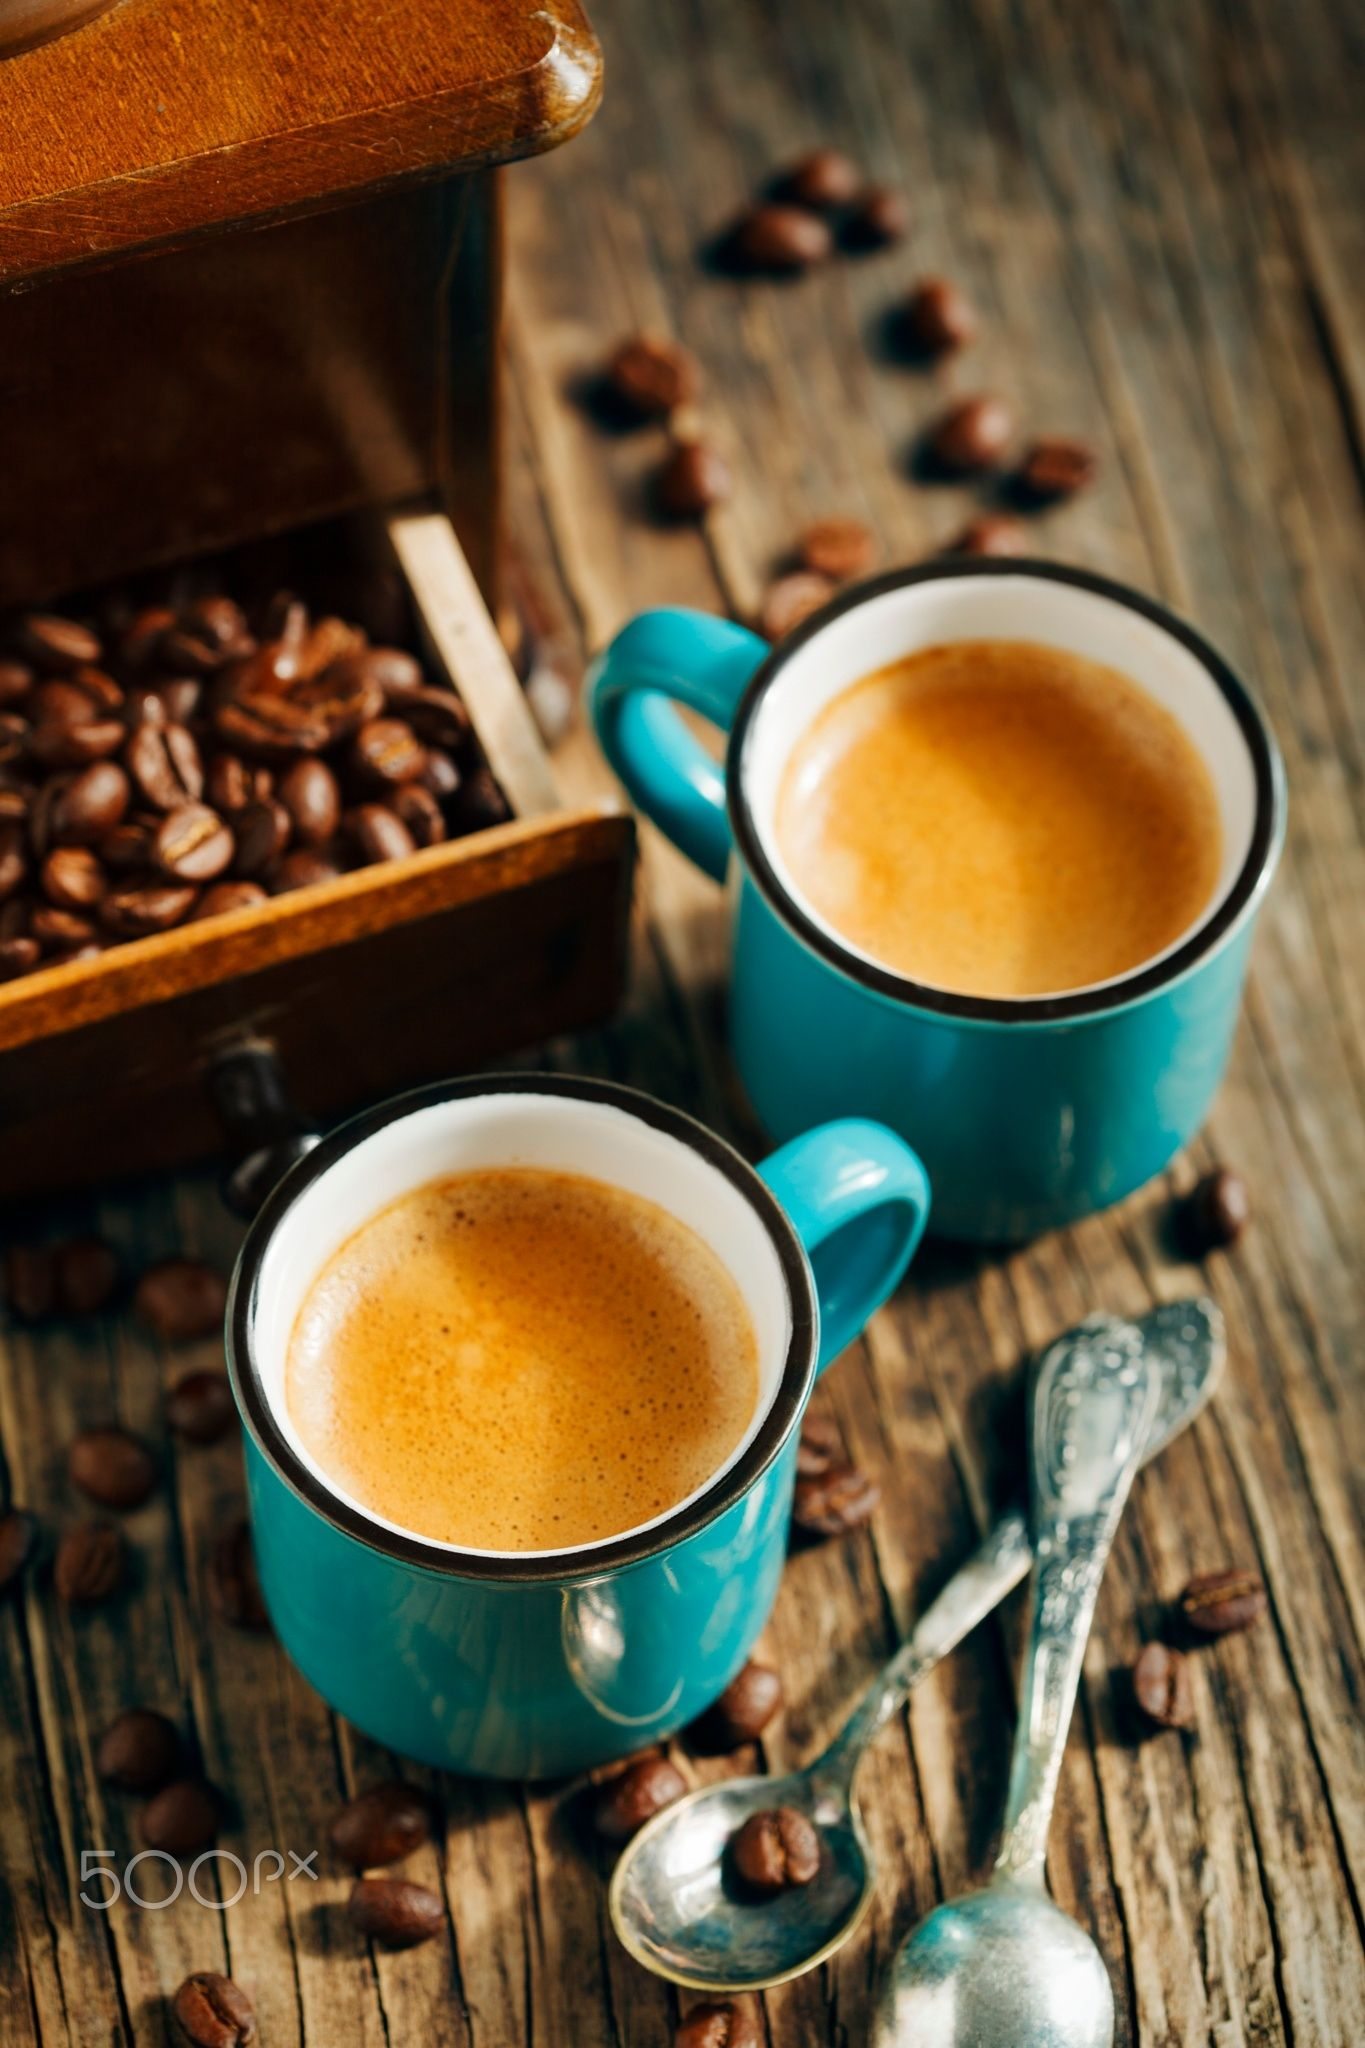 I just need a coffee like this. (avec images) Recette